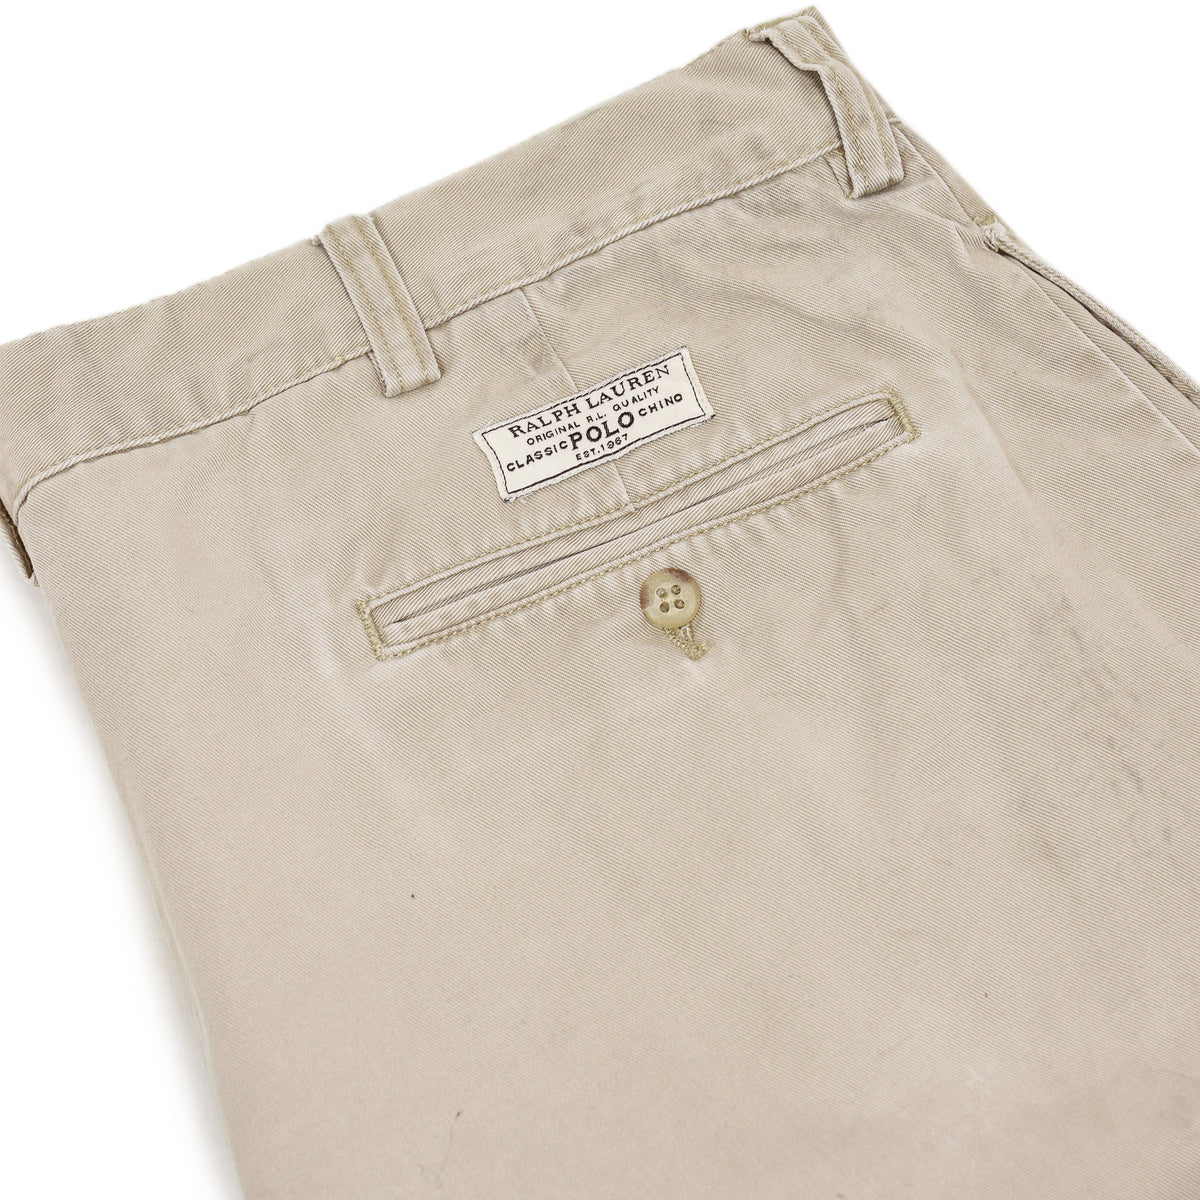 Vintage 90s Polo Ralph Lauren Tyler Cotton Double Pleated Chino Shorts 36 W back pocket